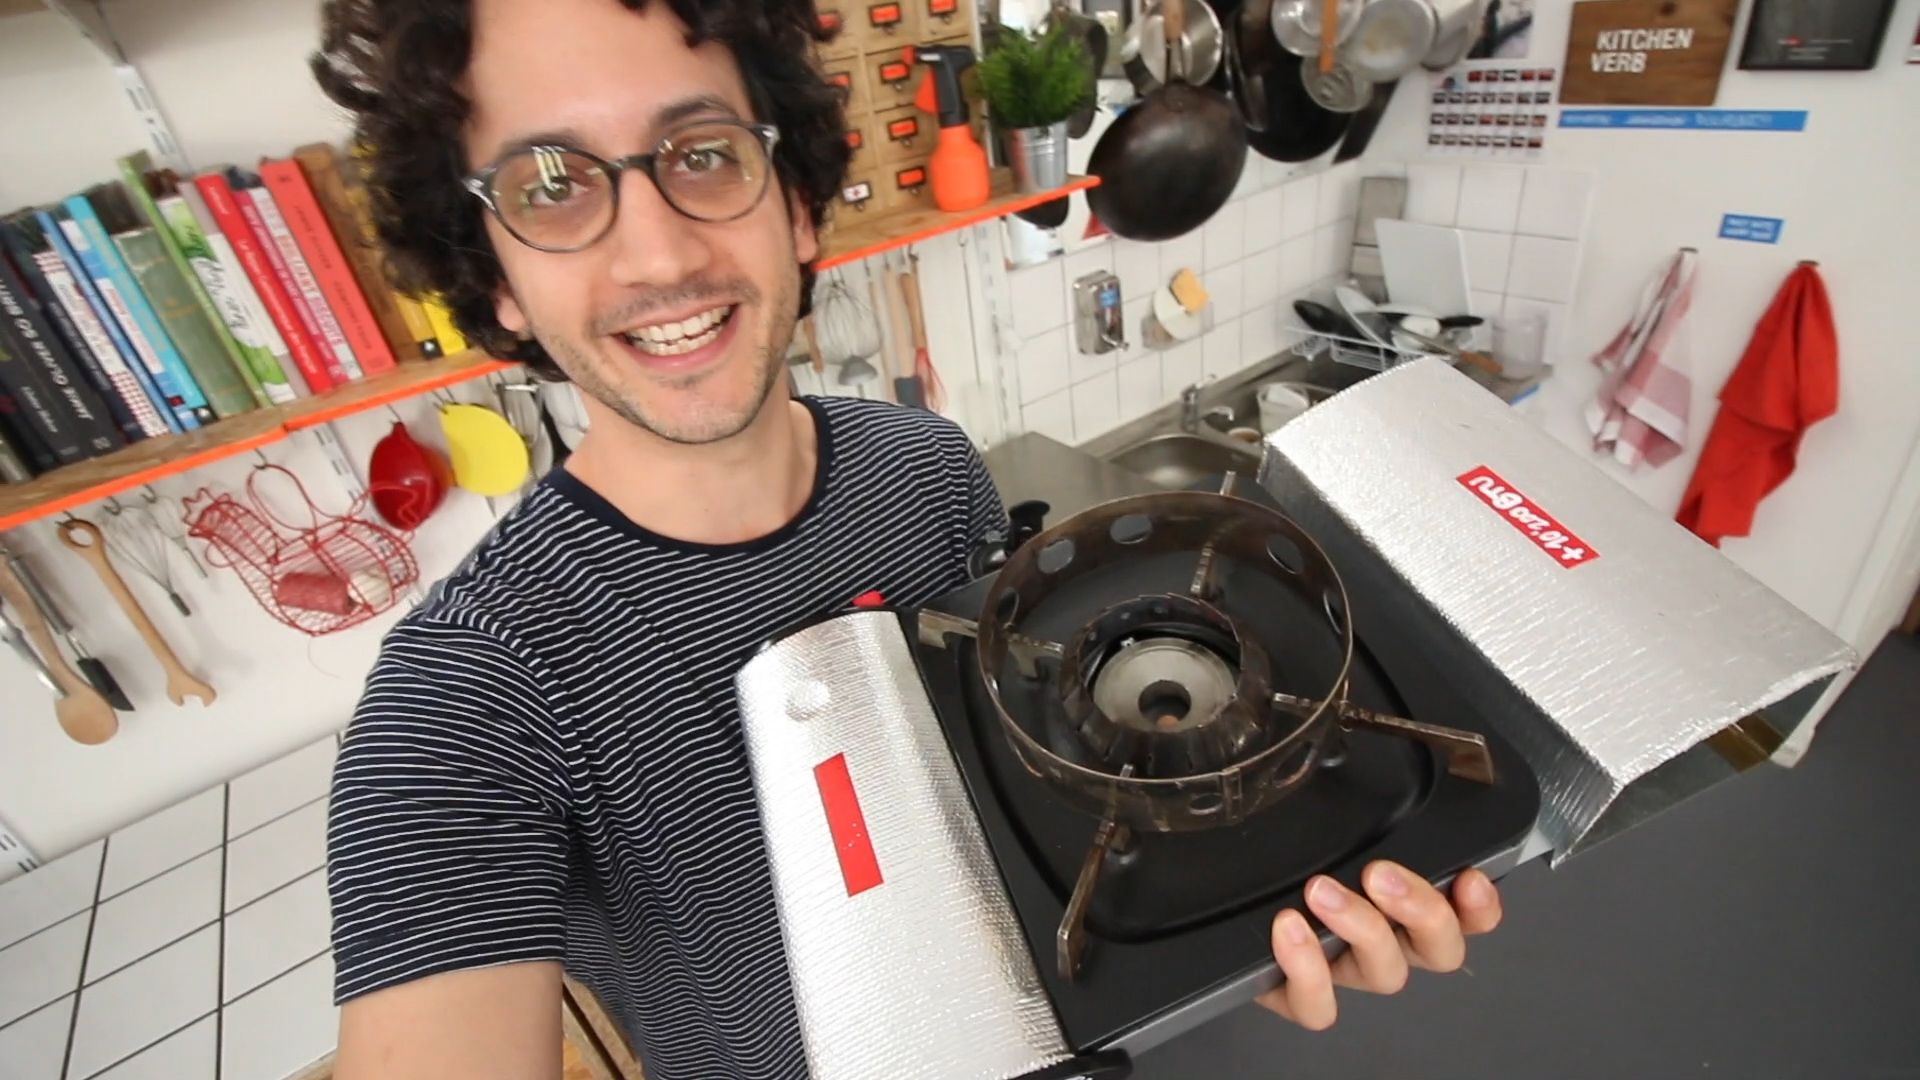 Upgrade a Simple Gas Stove Into a Powerful Wok Range